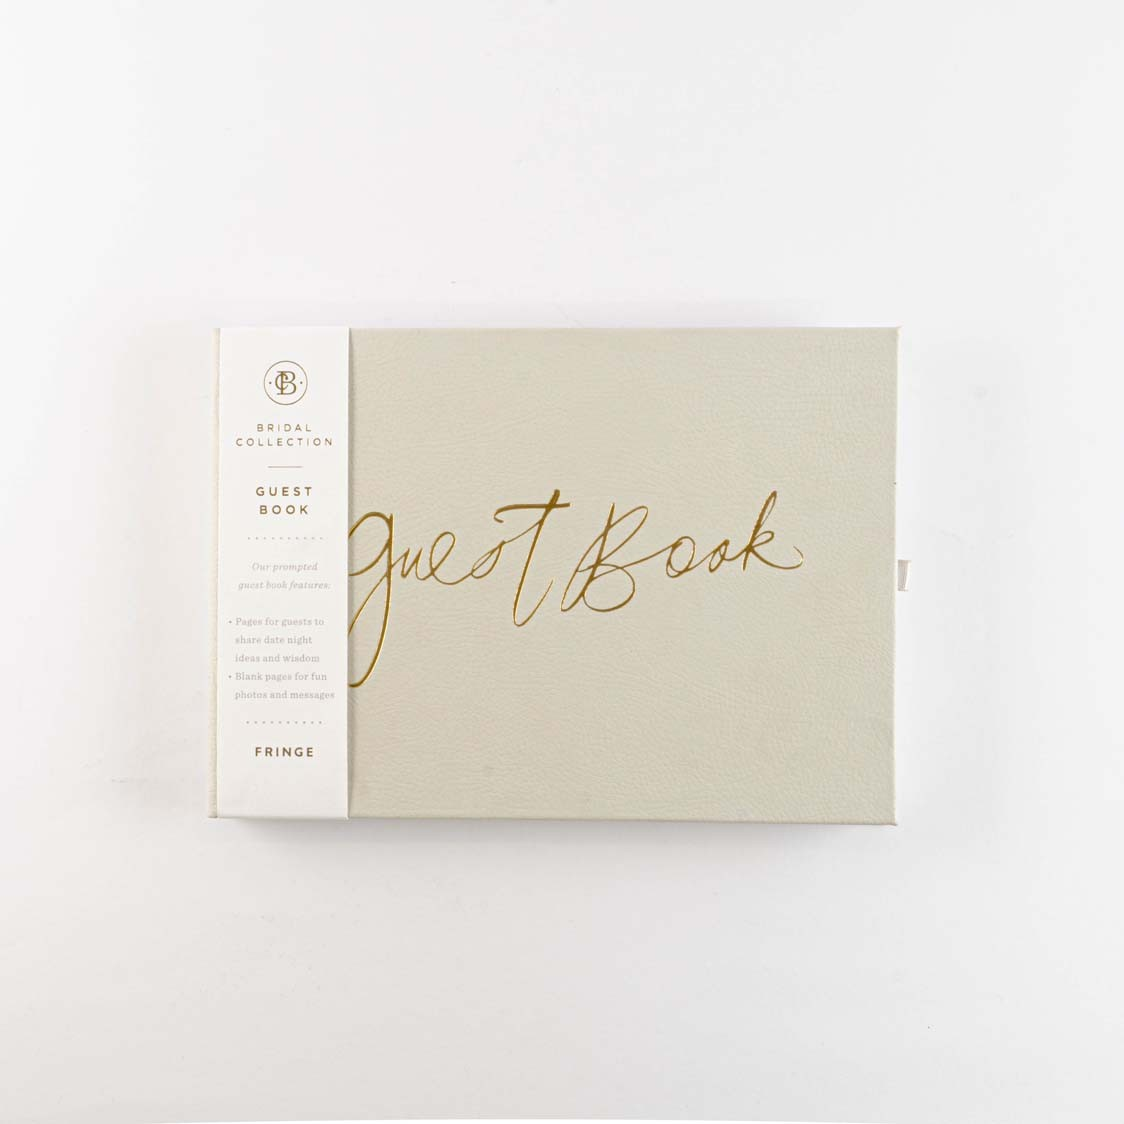 GUEST BOOK GRAY FAUX LEATHER HARDDCOVER G